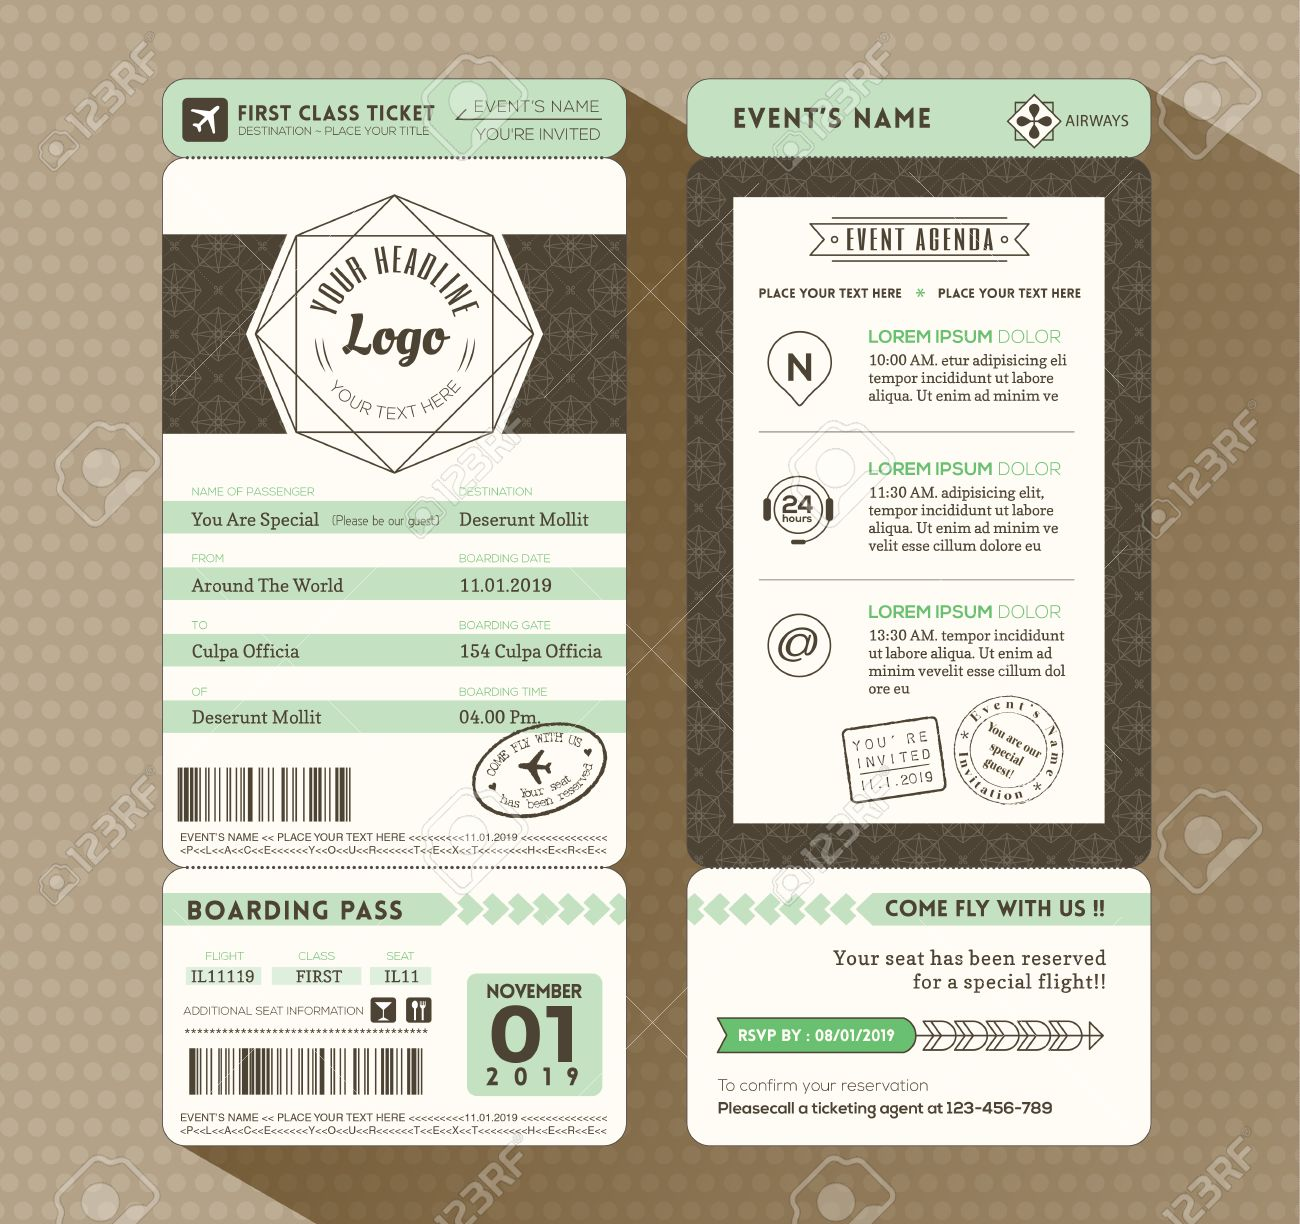 Hipster Design Boarding Pass Ticket Event Invitation Card Vector – Invitation Card for Event